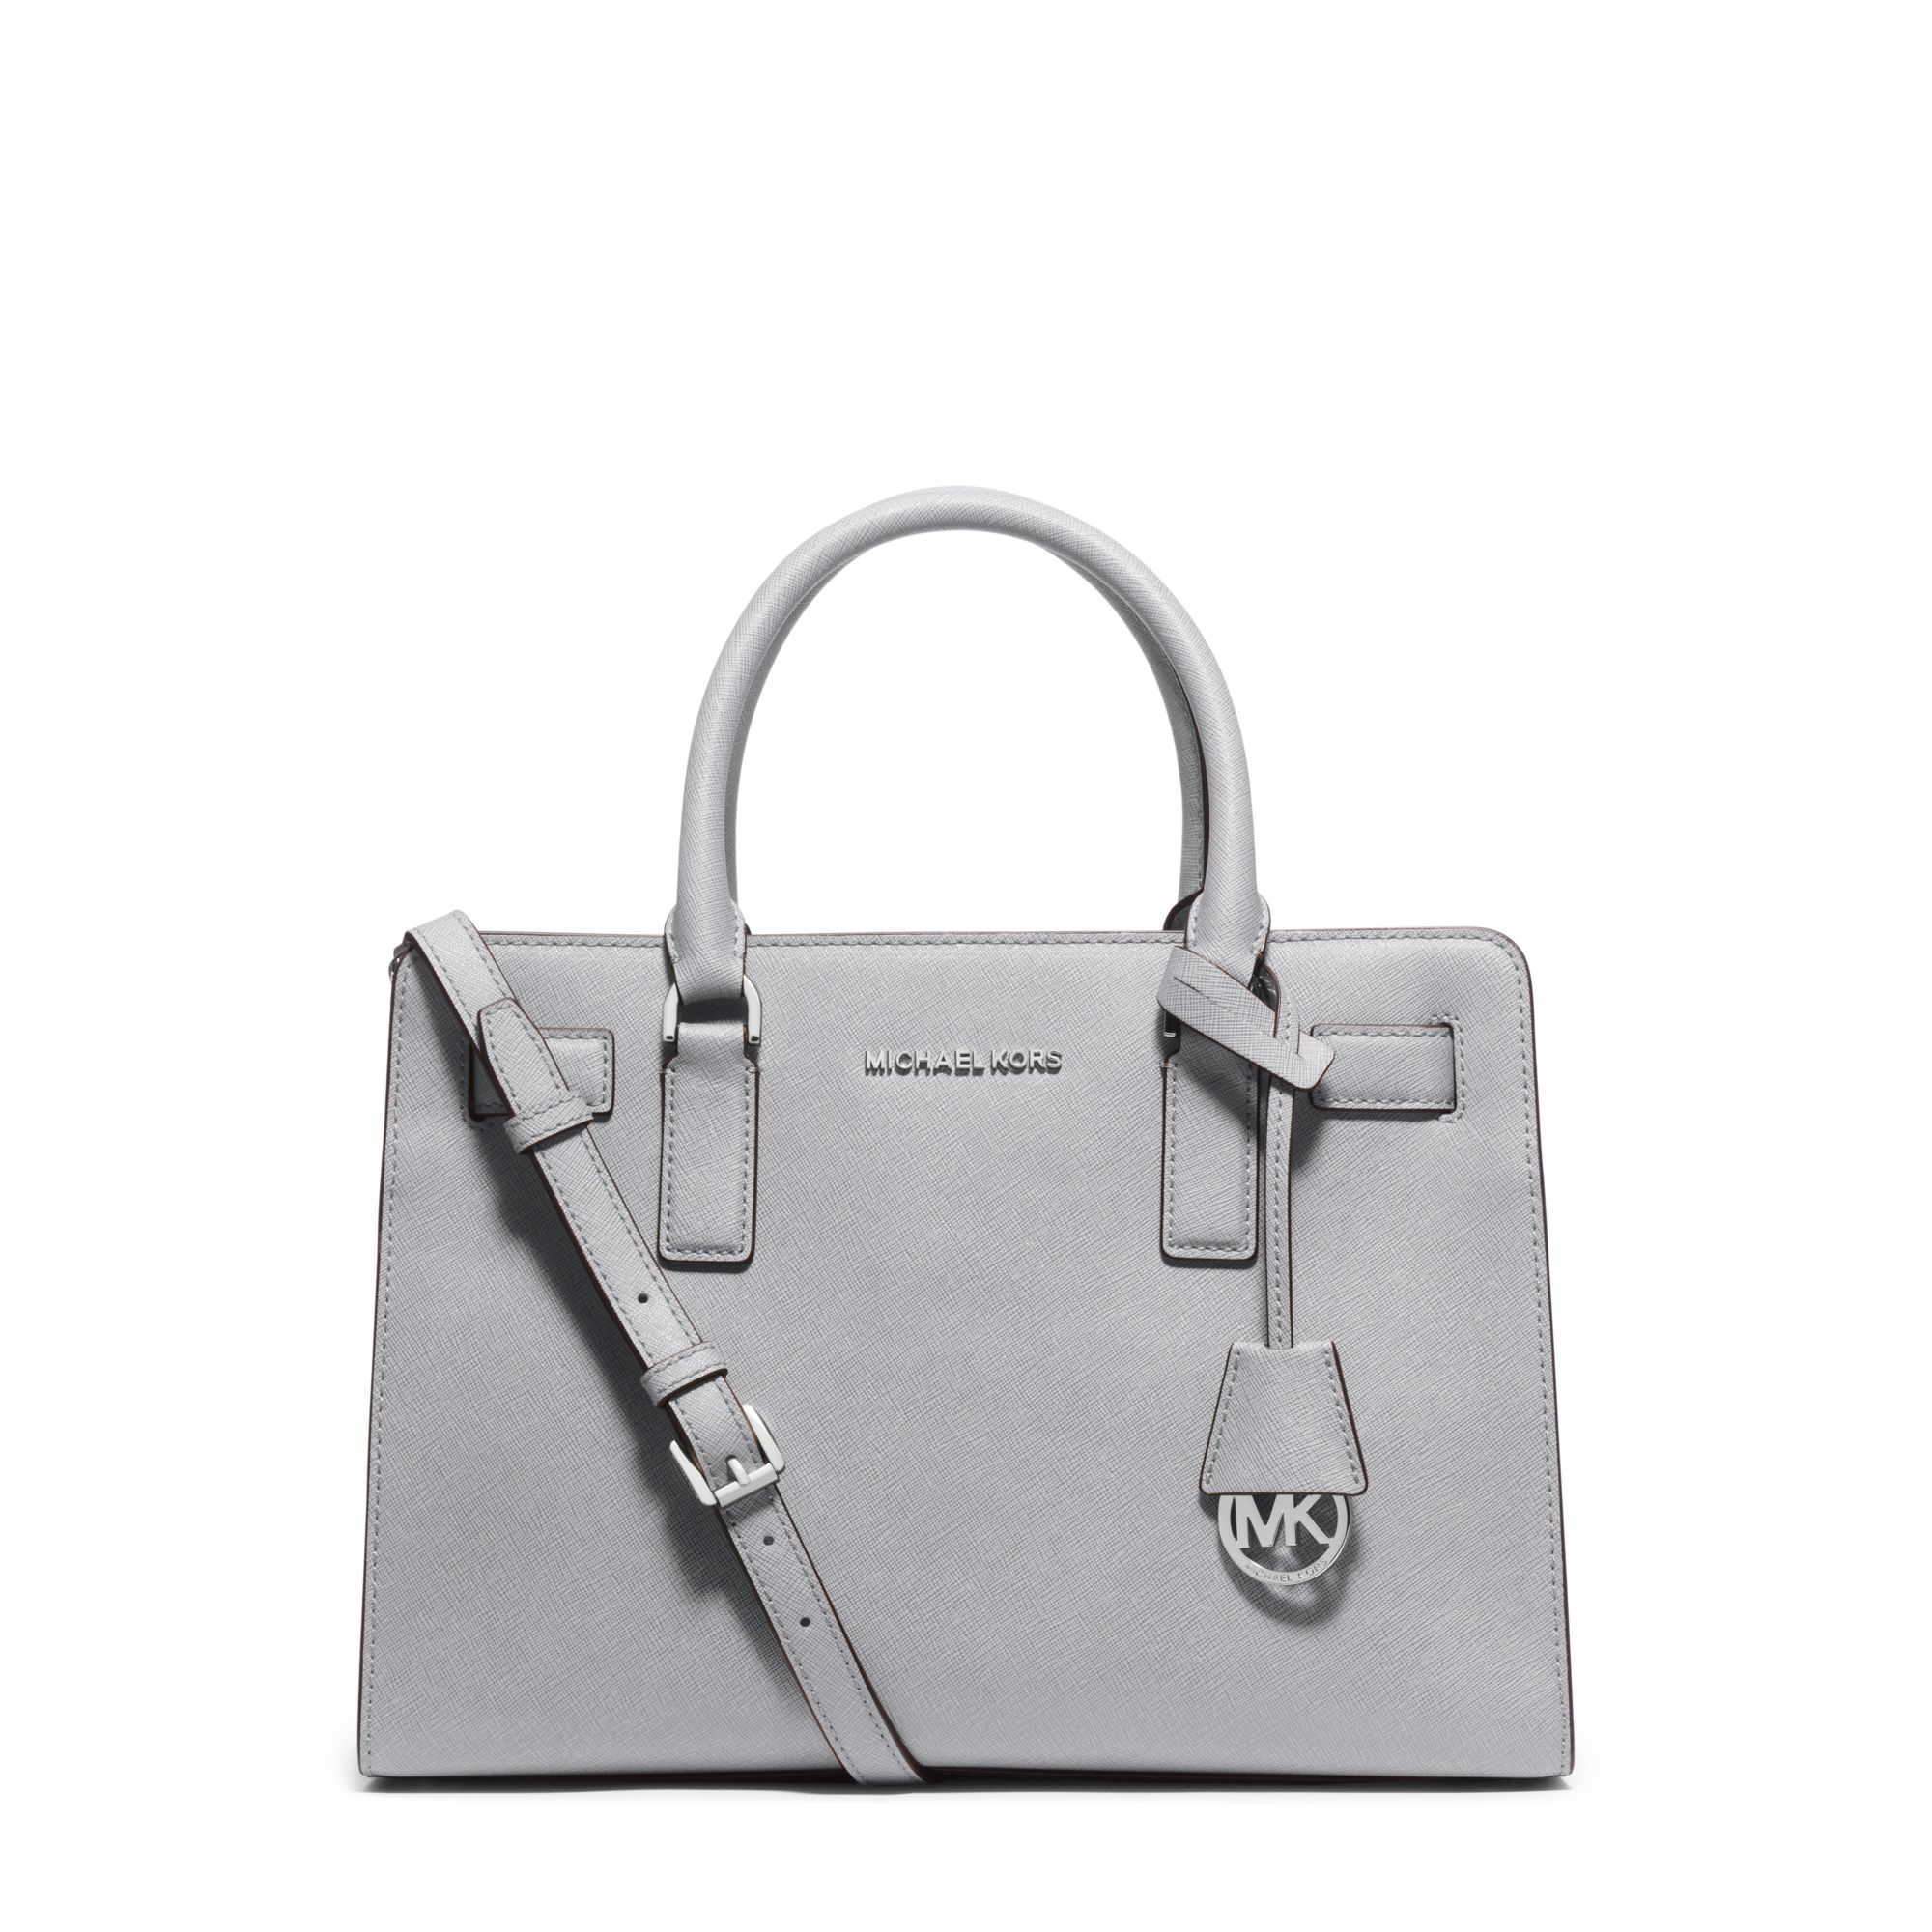 b8987121bf35 Lyst - Michael Kors Dillon Saffiano Leather Satchel in Gray